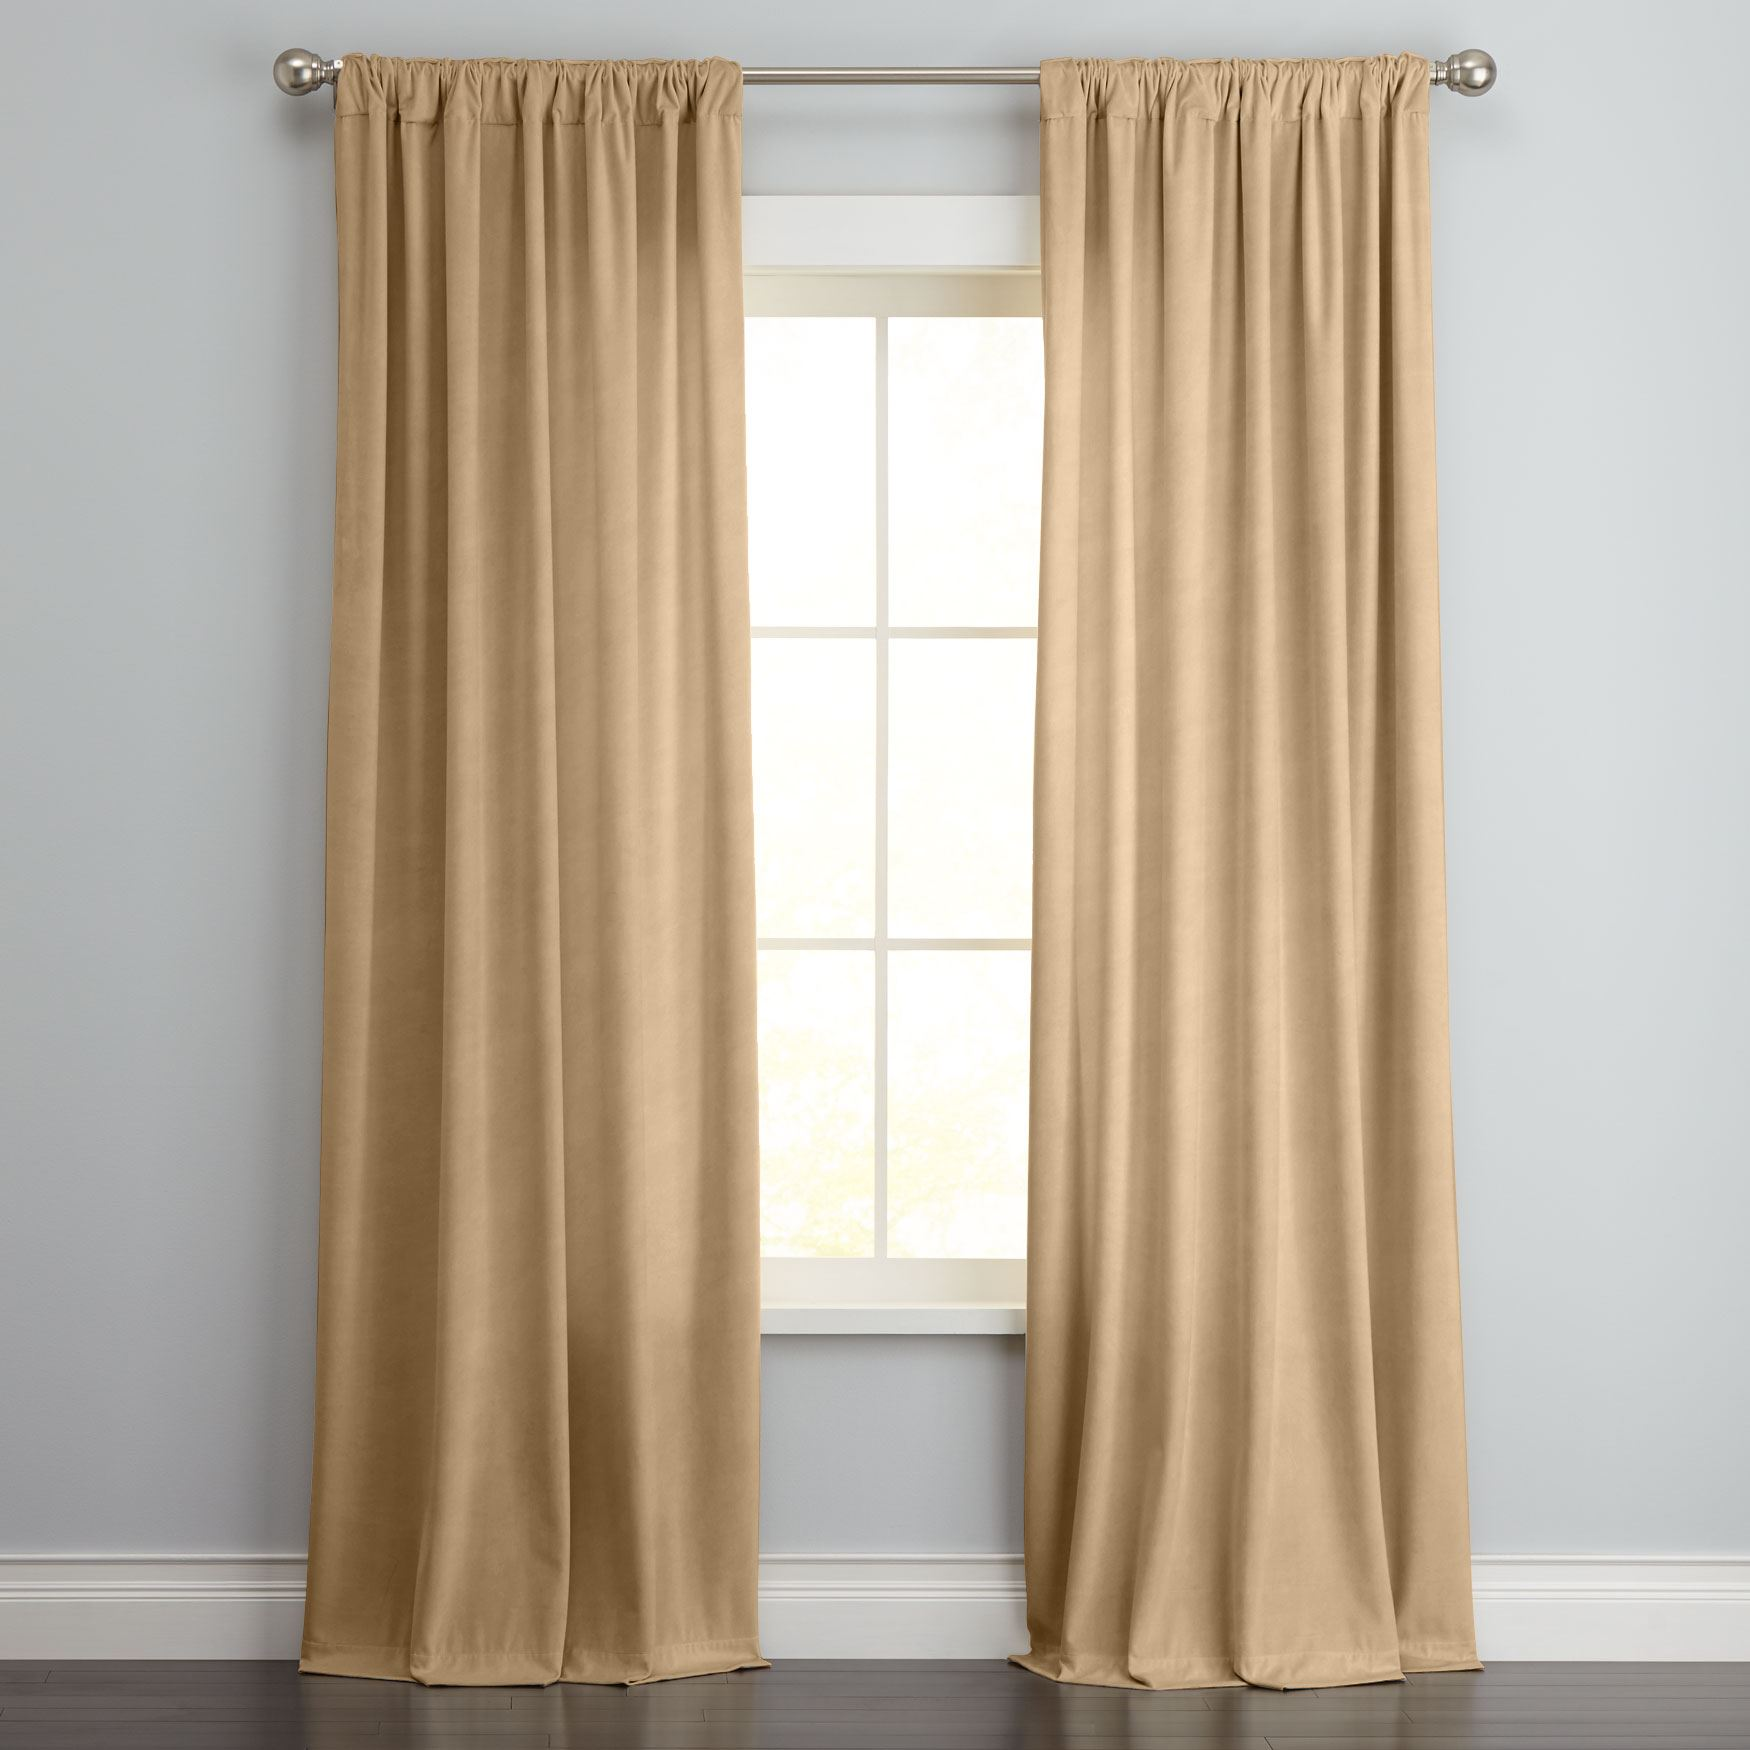 drapes and curtains venice velvet window panel NDQLQWH